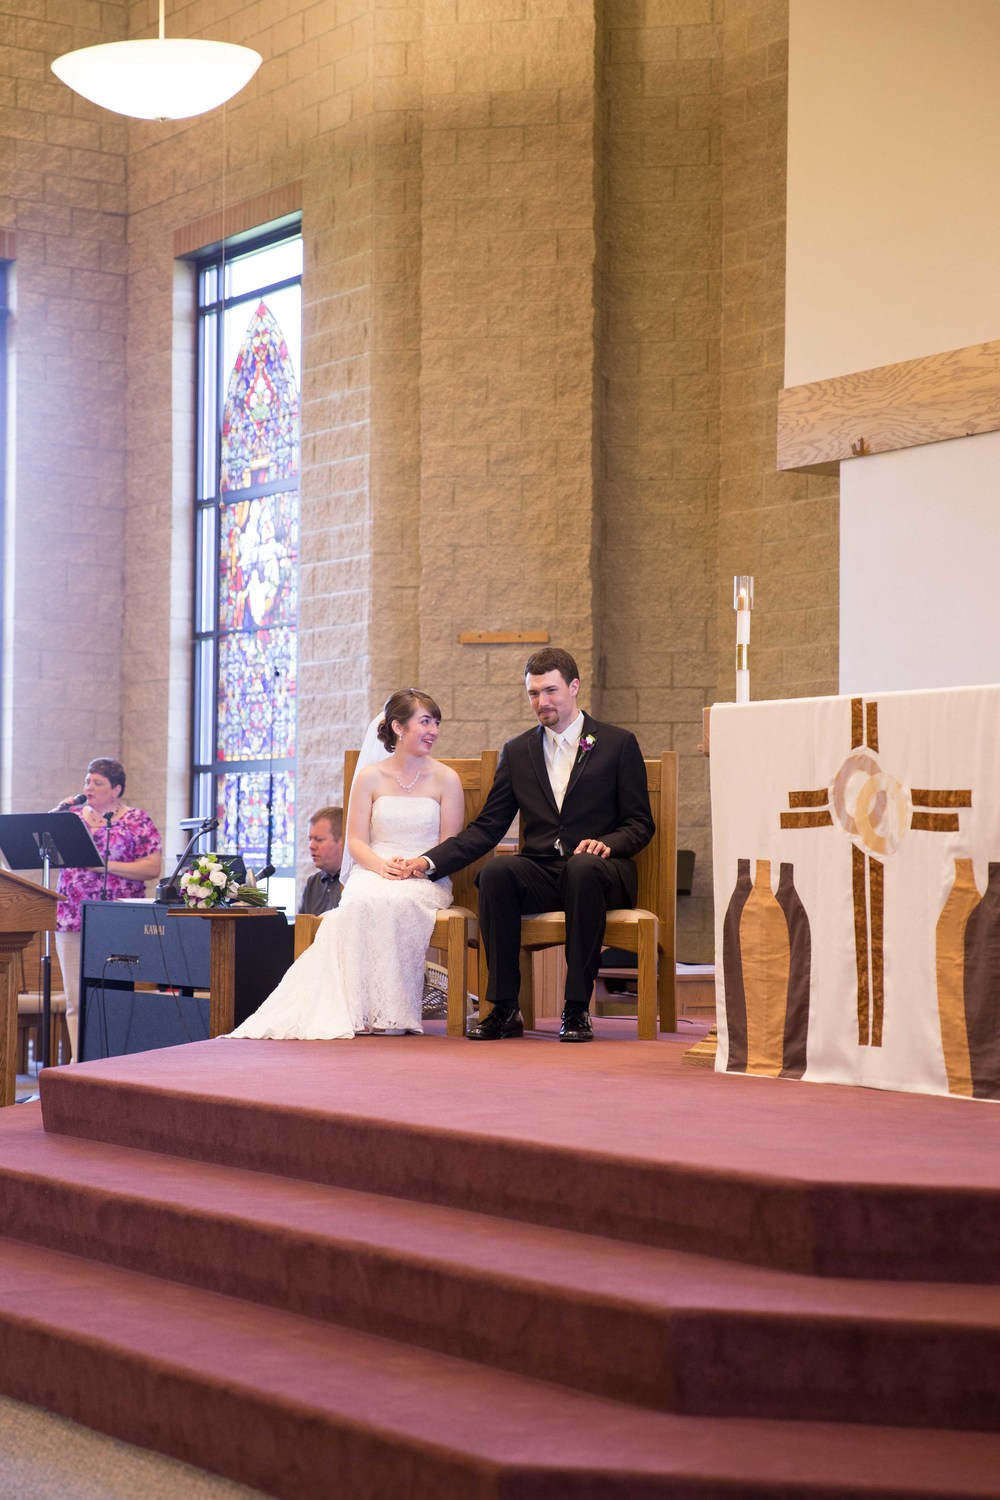 Fox Valley Wedding Photographer - Whit Meza Photography